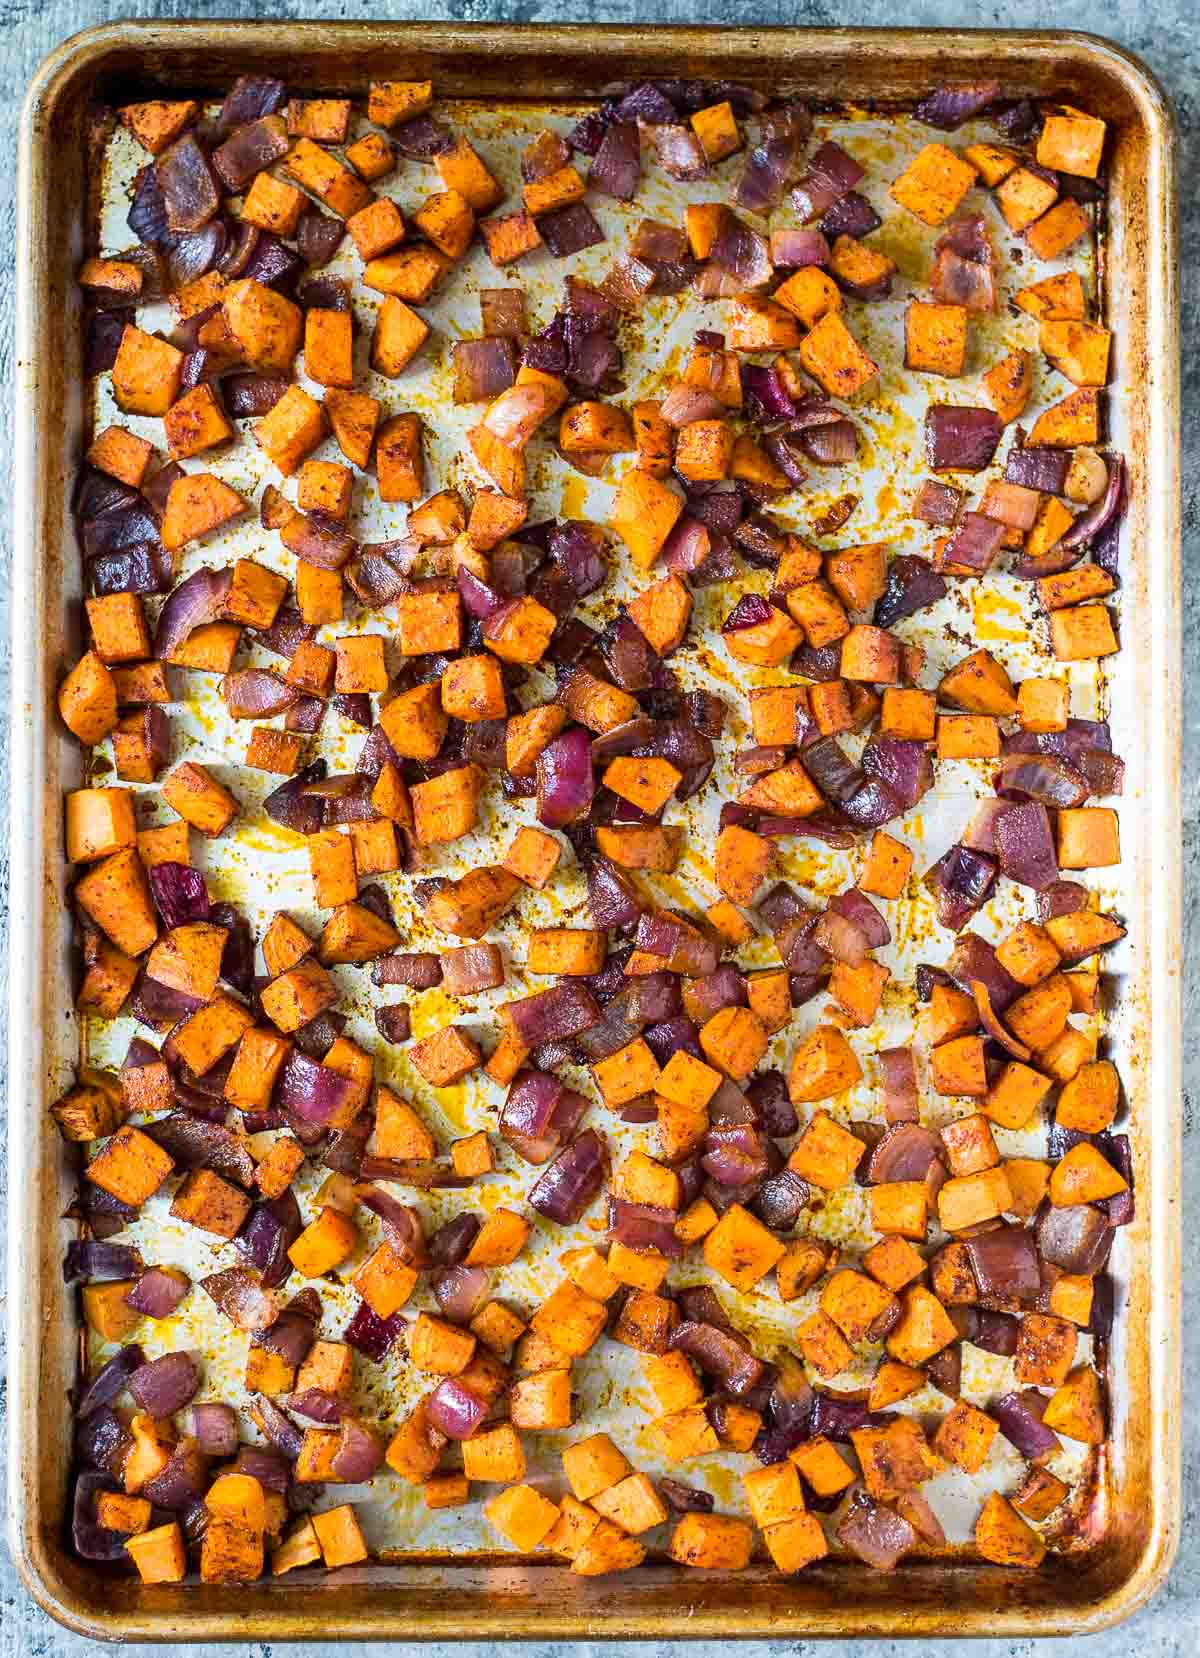 Roasted Sweet Potato Quinoa Black Bean Salad. Healthy, easy, and DELICIOUS! Perfect make-ahead recipe for healthy lunches or to bring as a side dish at parties and potlucks. @wellplated